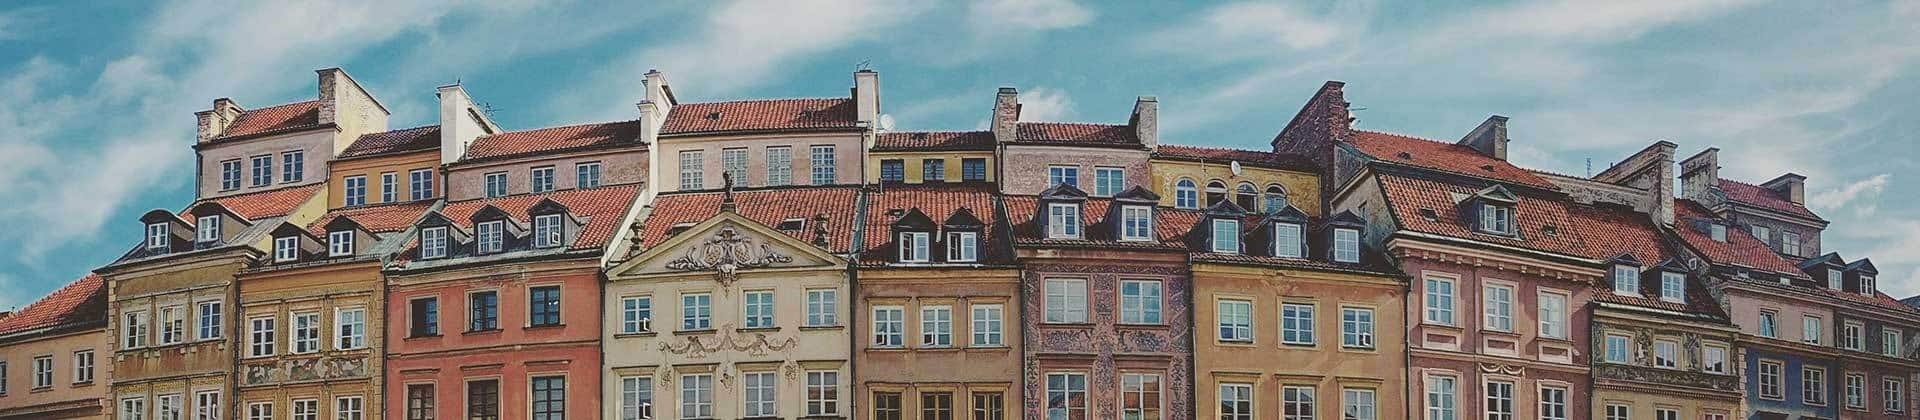 Buildings in Warsaw's Old Town